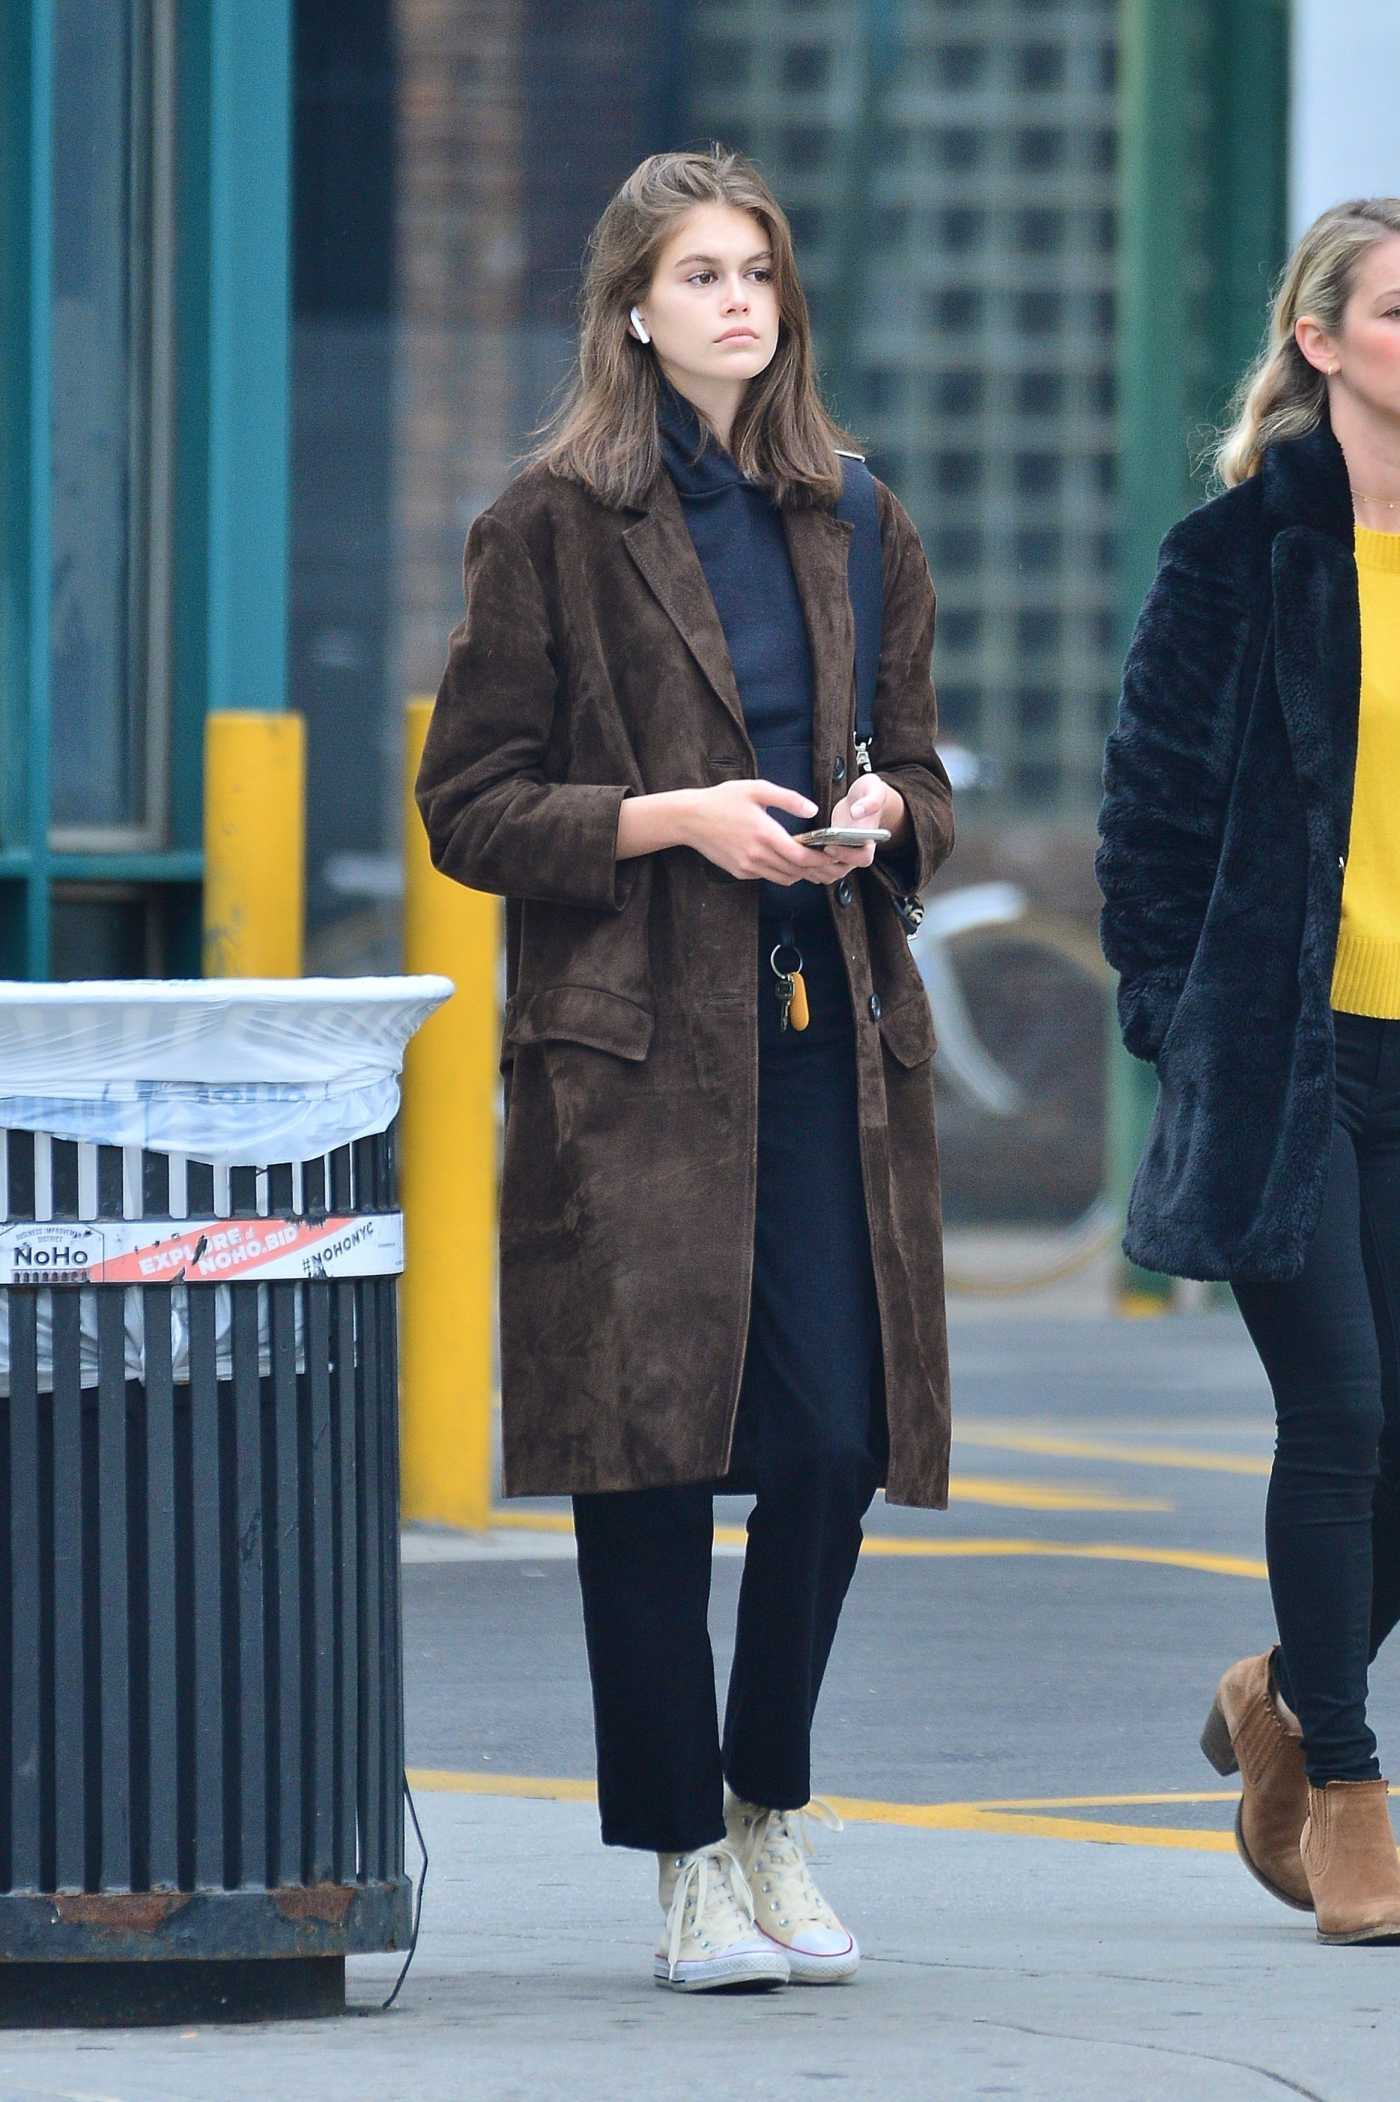 Kaia Gerber in a Brown Trench Coat Waving for a Cab in SoHo in NYC 05/03/2019